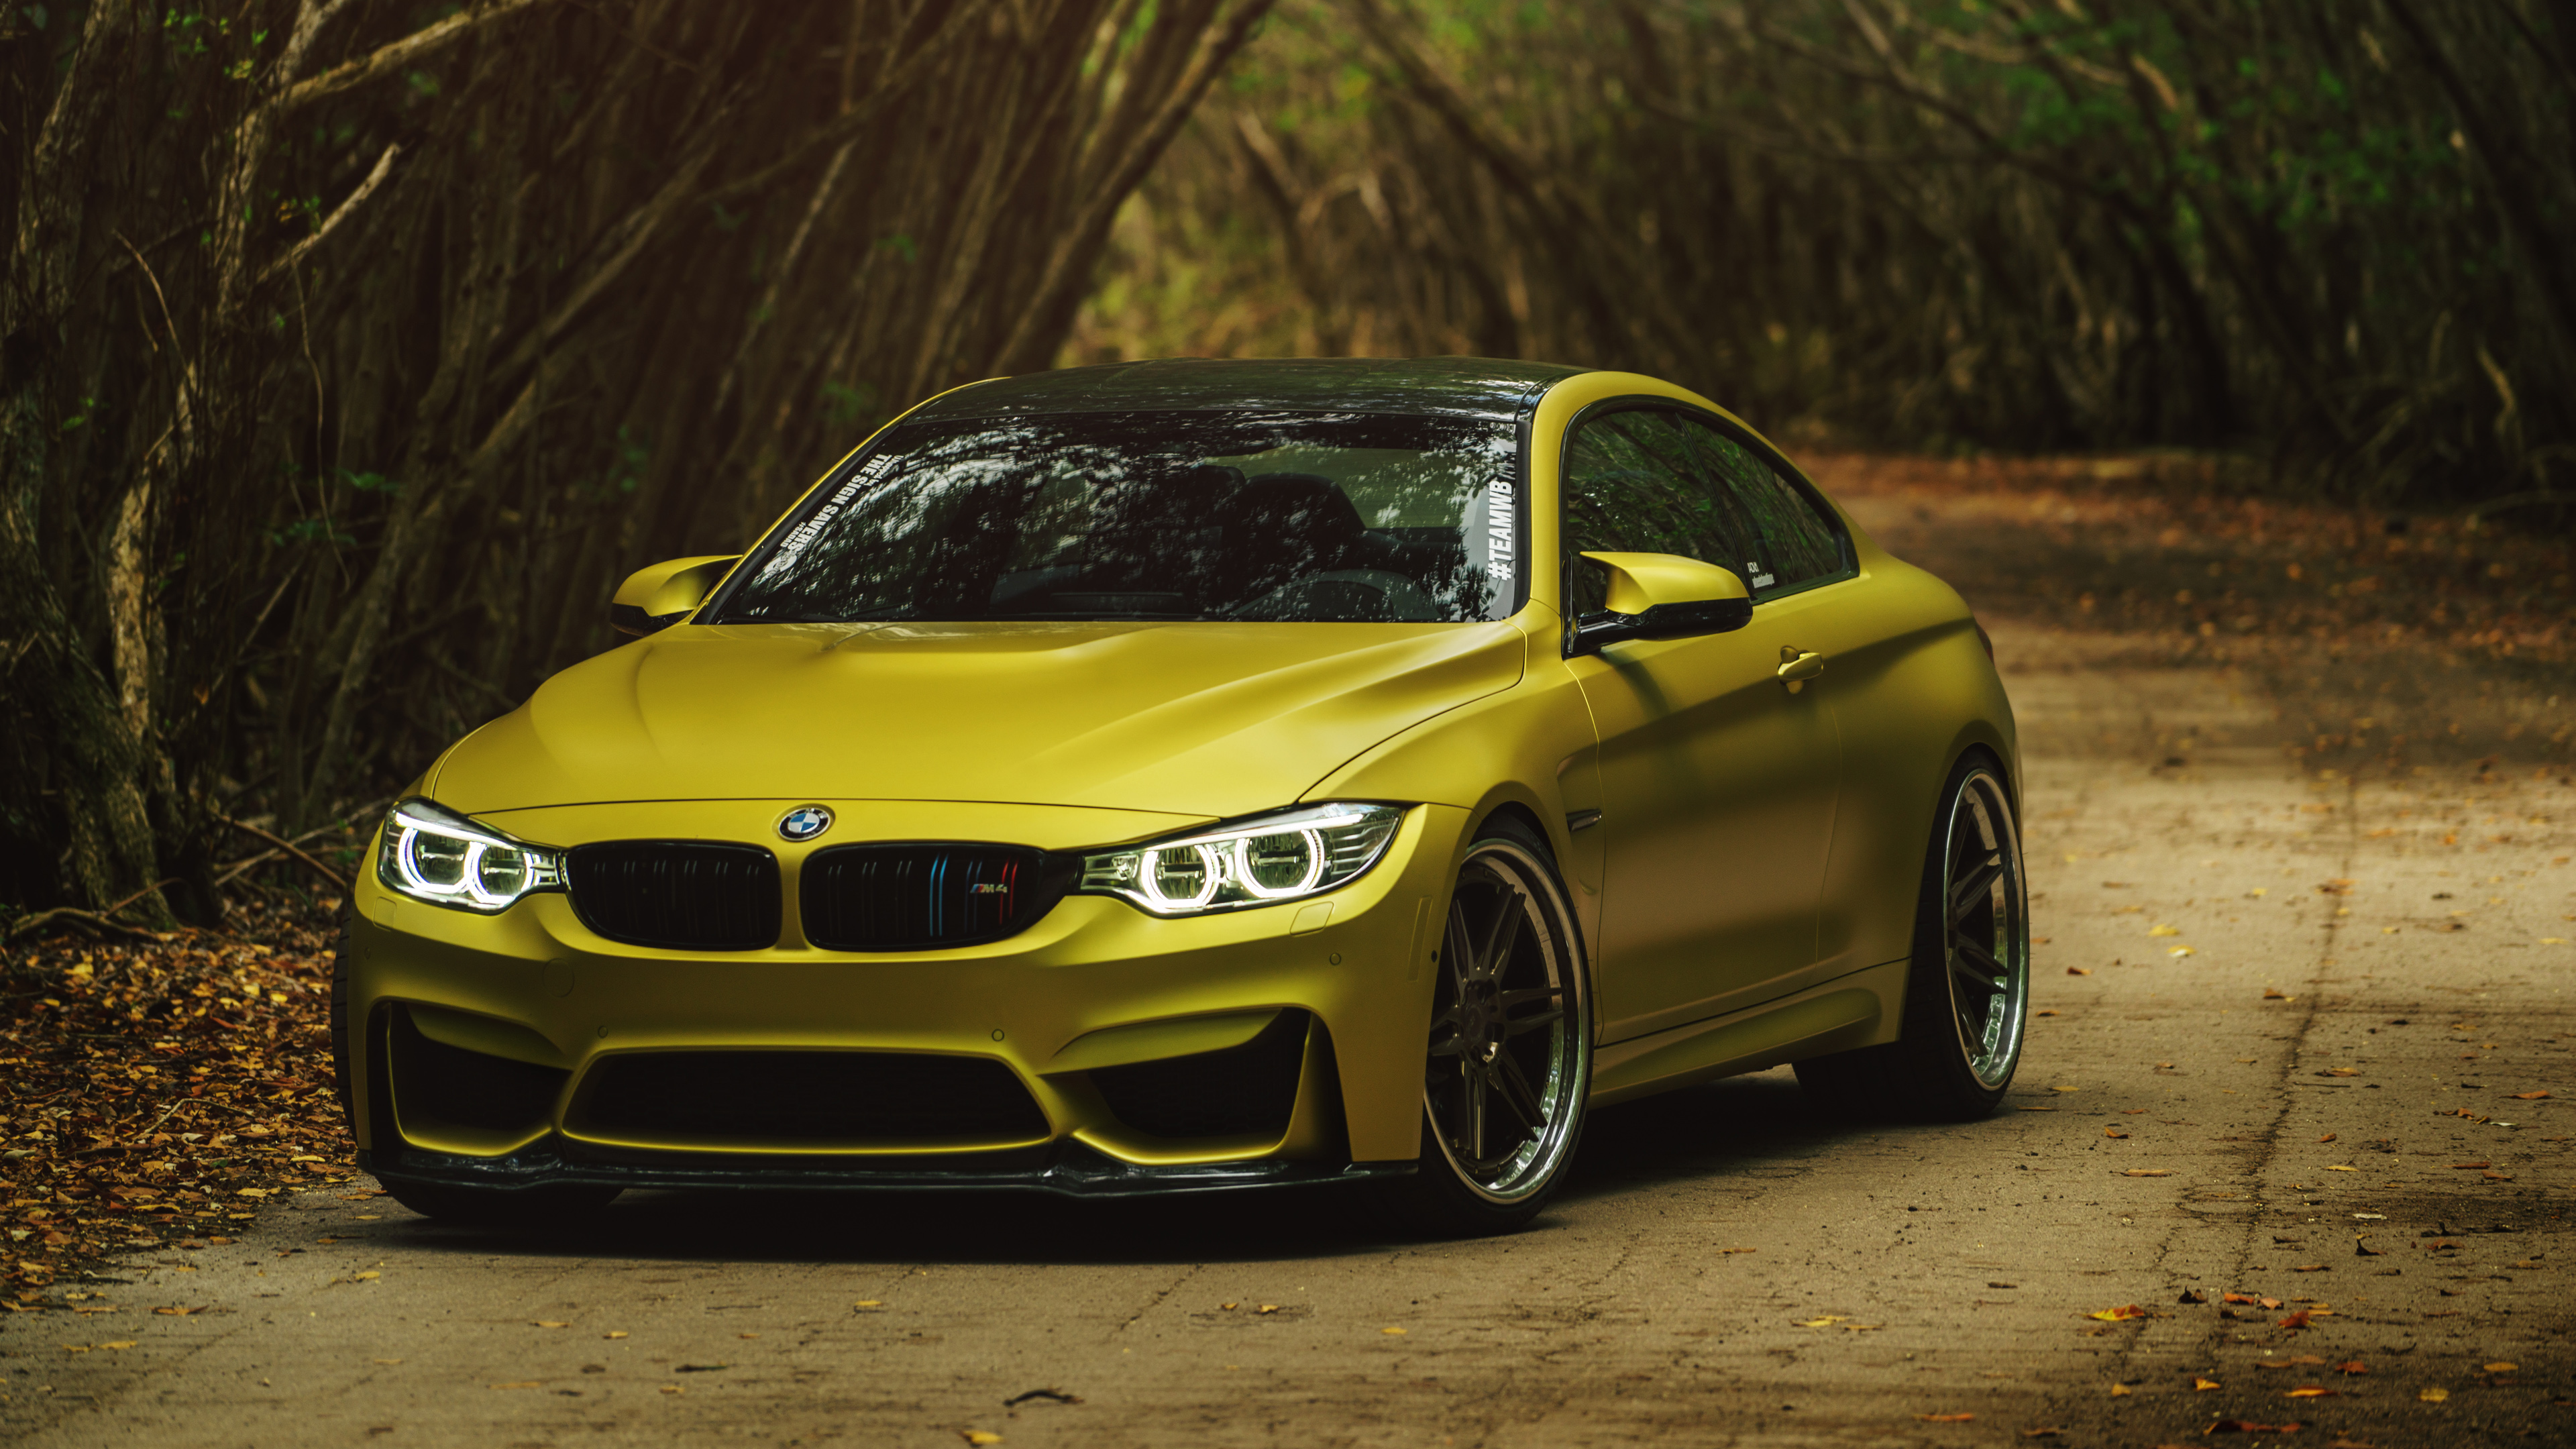 Bmw Jeep 2015 >> ADV1 SS Austin Yellow BMW M4 Wallpaper | HD Car Wallpapers | ID #5543